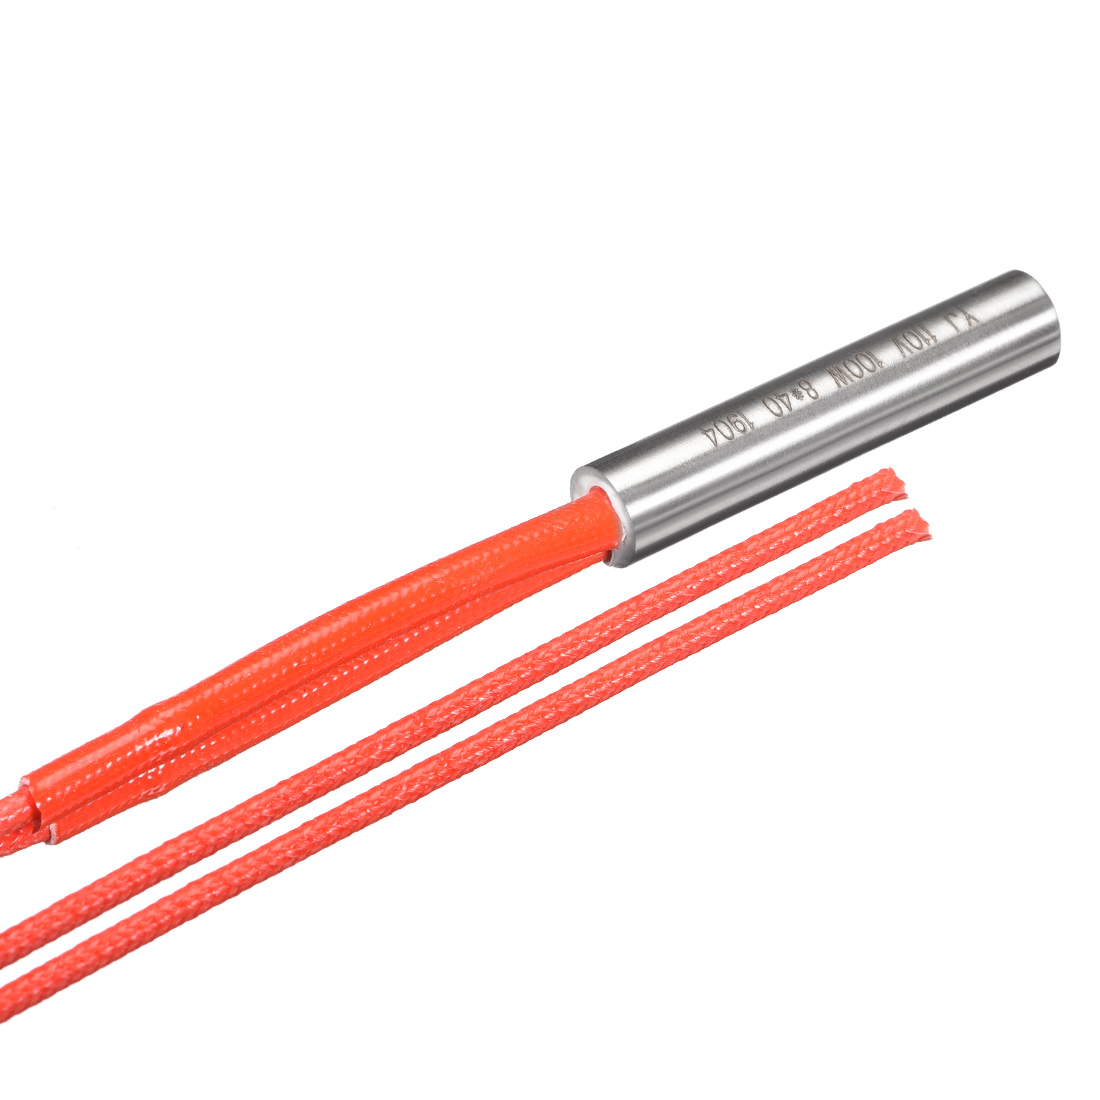 Cartridge Heater AC 110V 100w Stainless Steel Heating Element 8mmx40mm